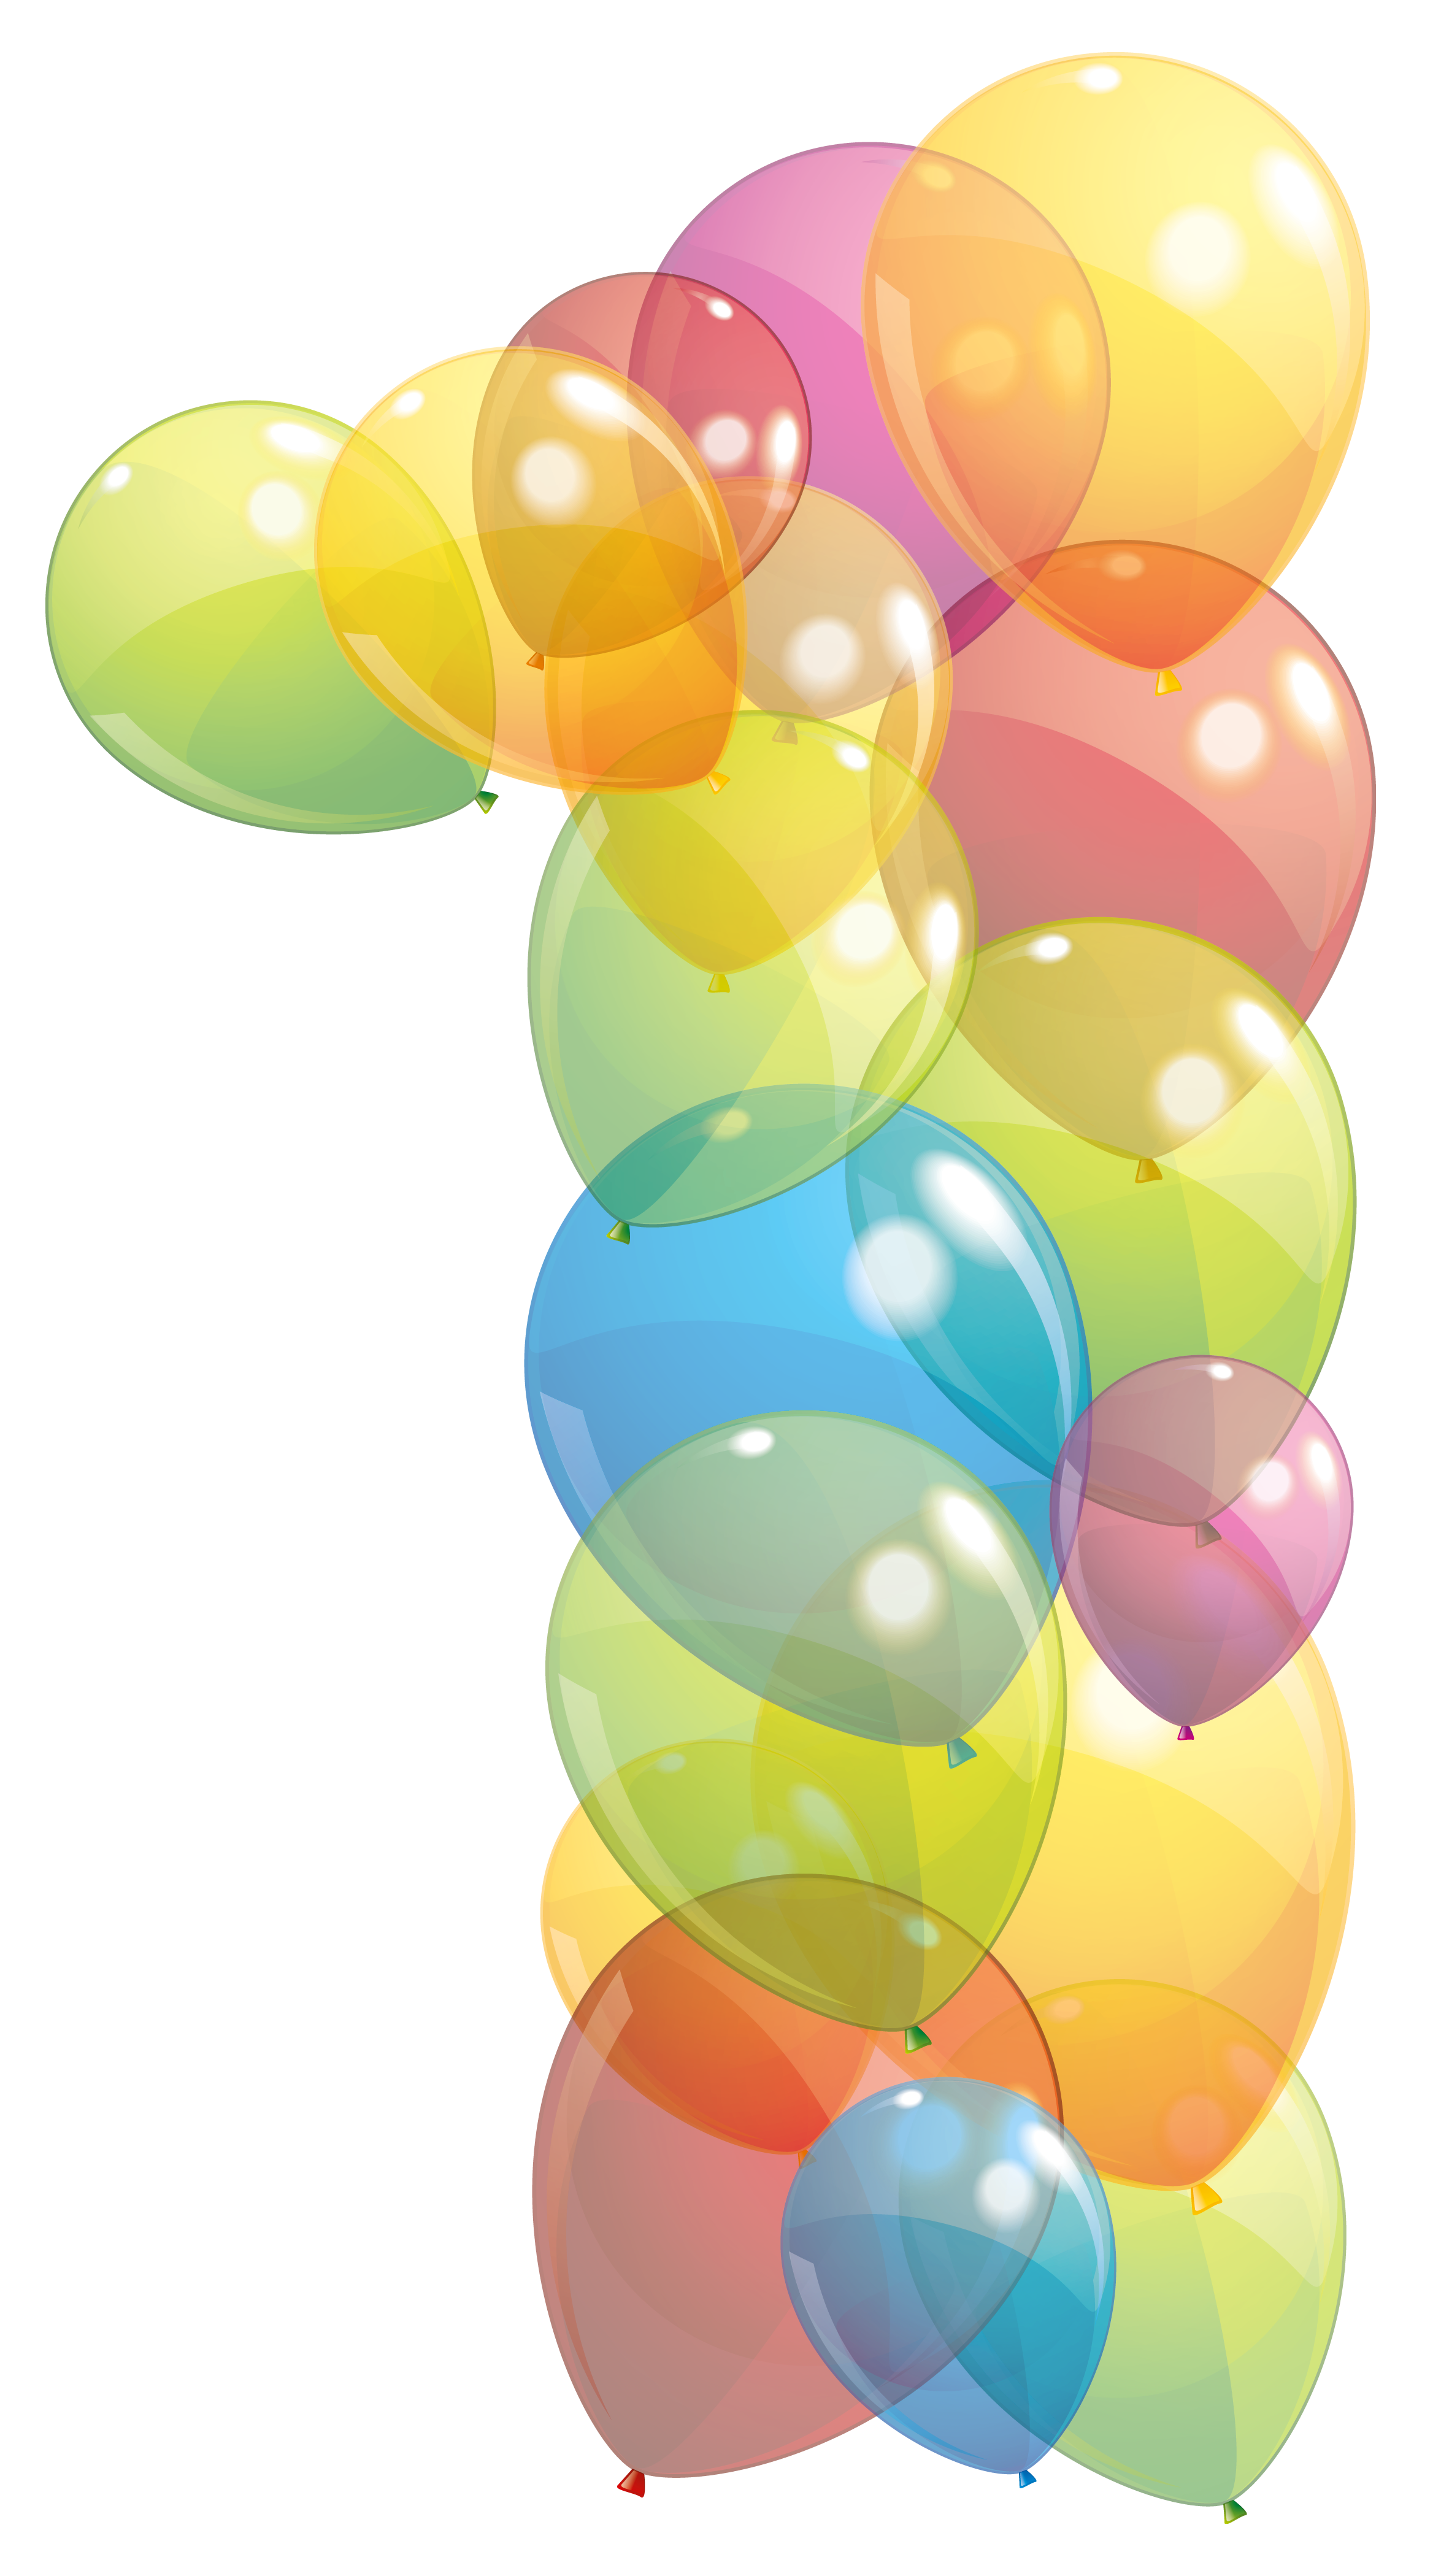 Transparent One Number of Balloons PNG Clipart Image.